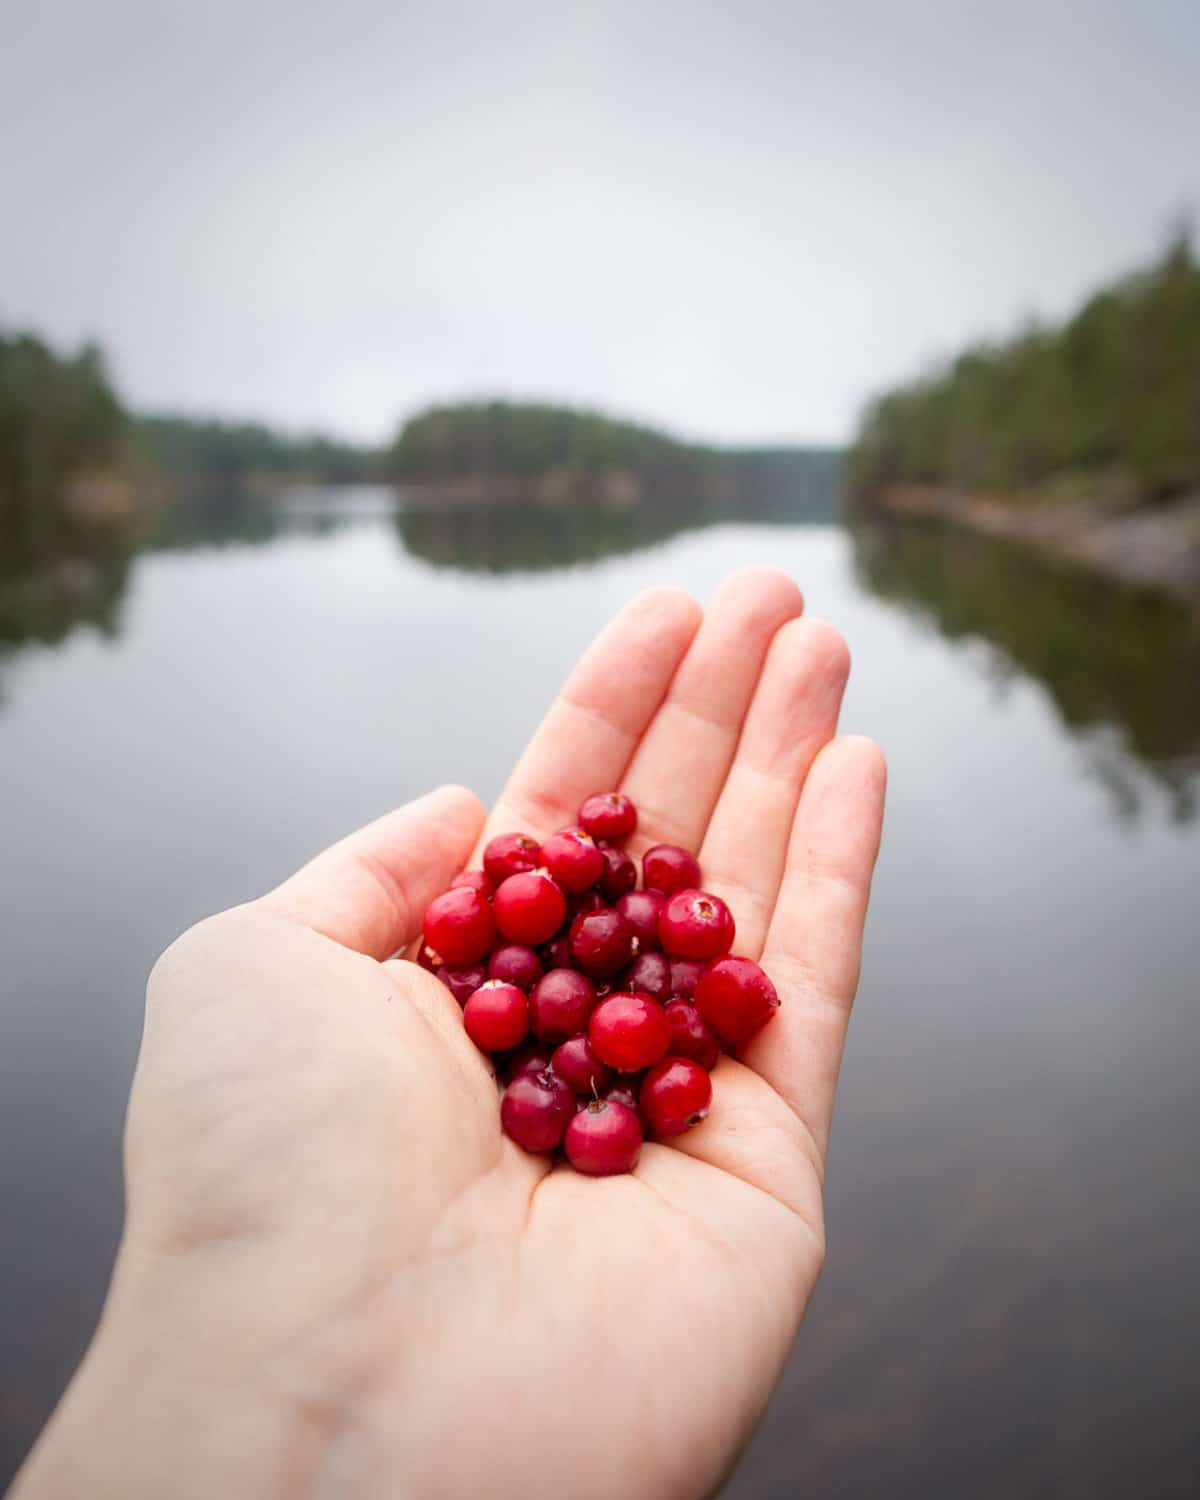 Nuuksio National Park in fall. Handful of wild cranberries straight from nature. Nature near Helsinki, Finland.